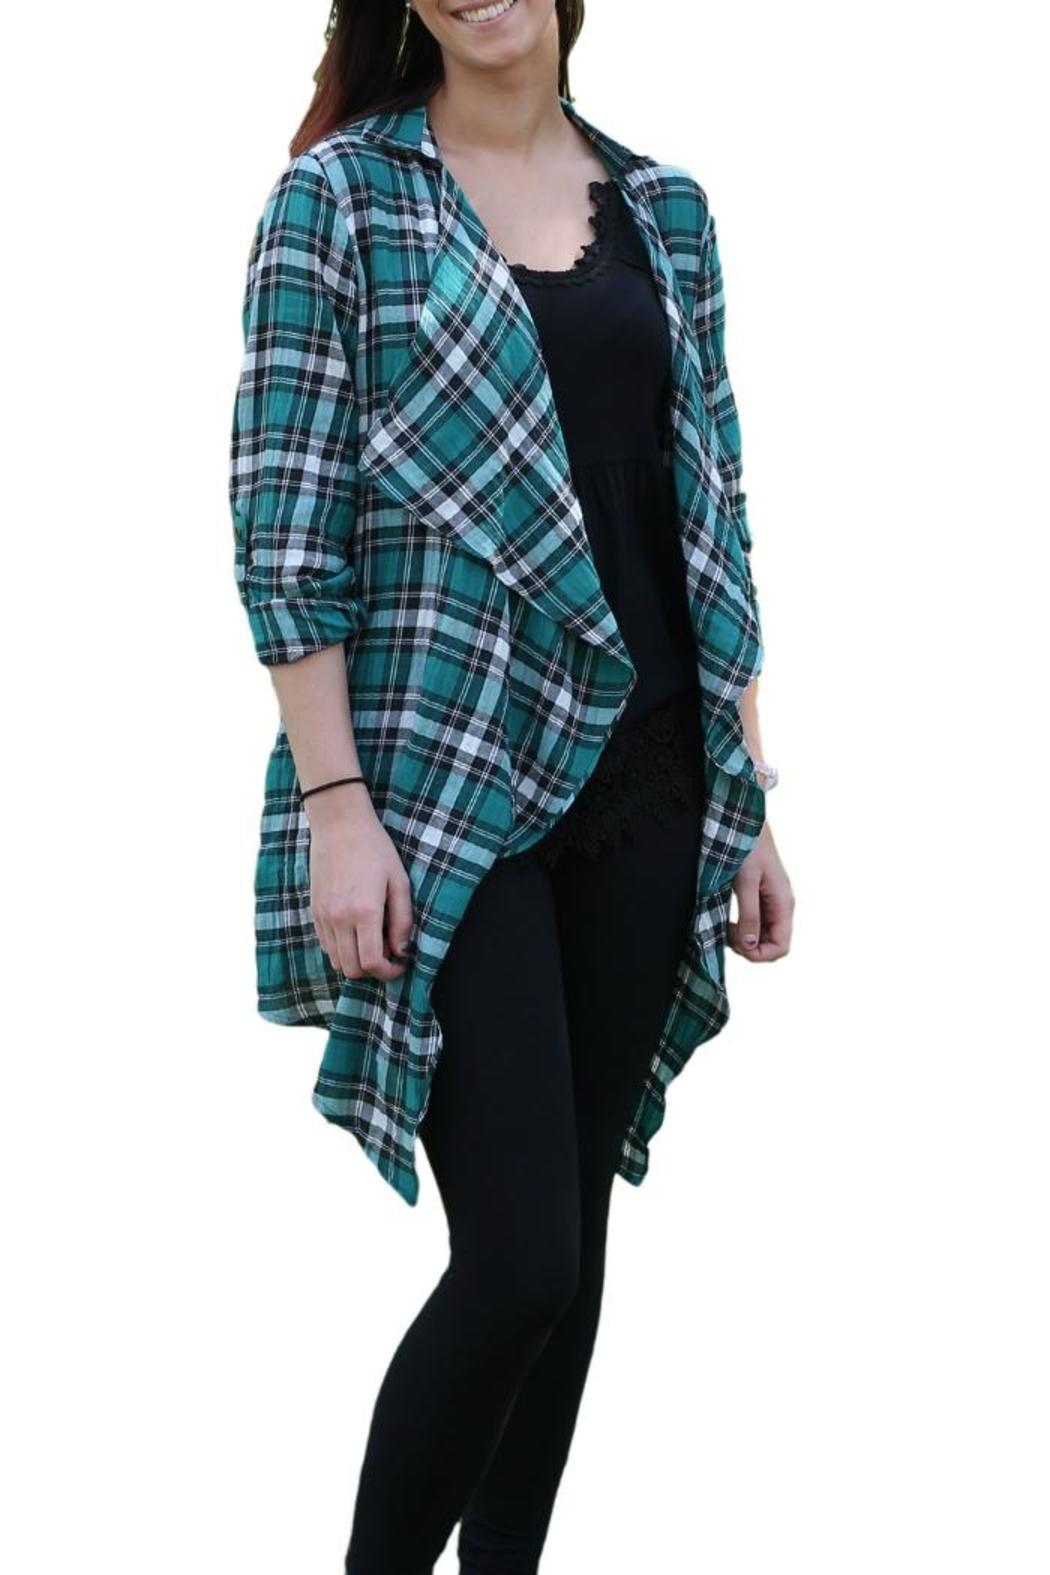 KORI AMERICA Open Plaid Cardigan from Michigan by Posh Boutique ...